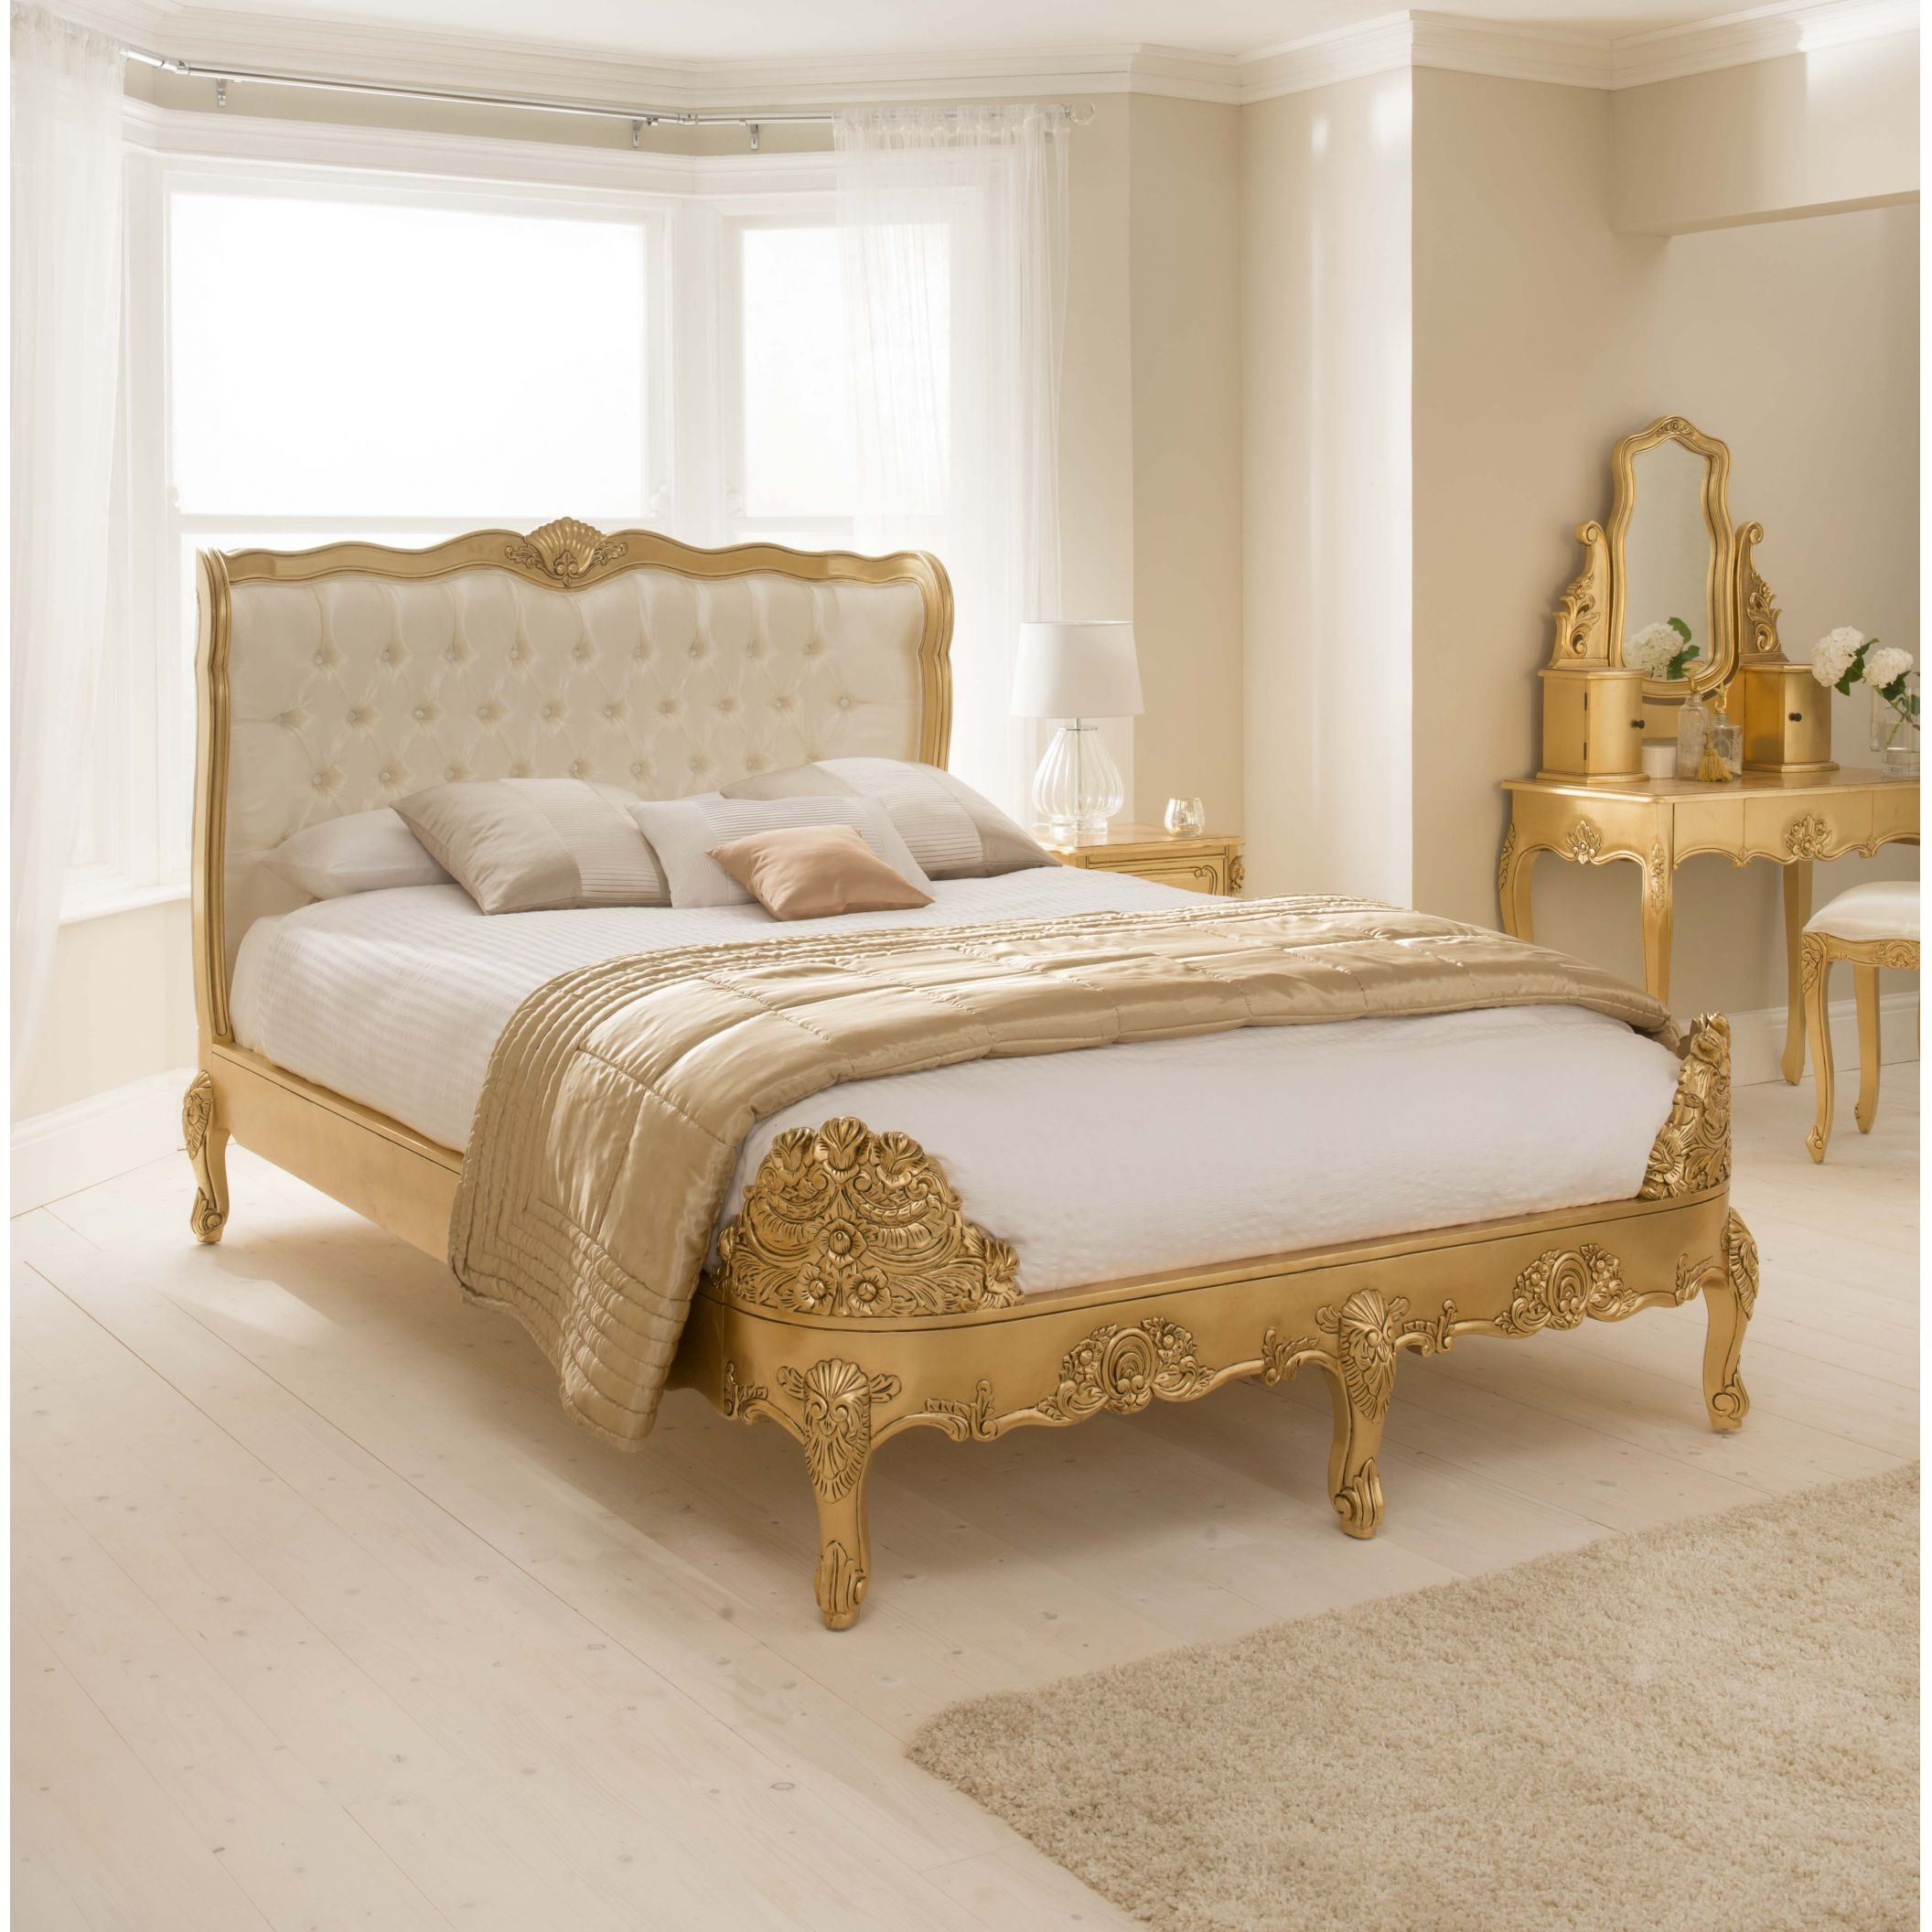 French Bed Frame Super King Size